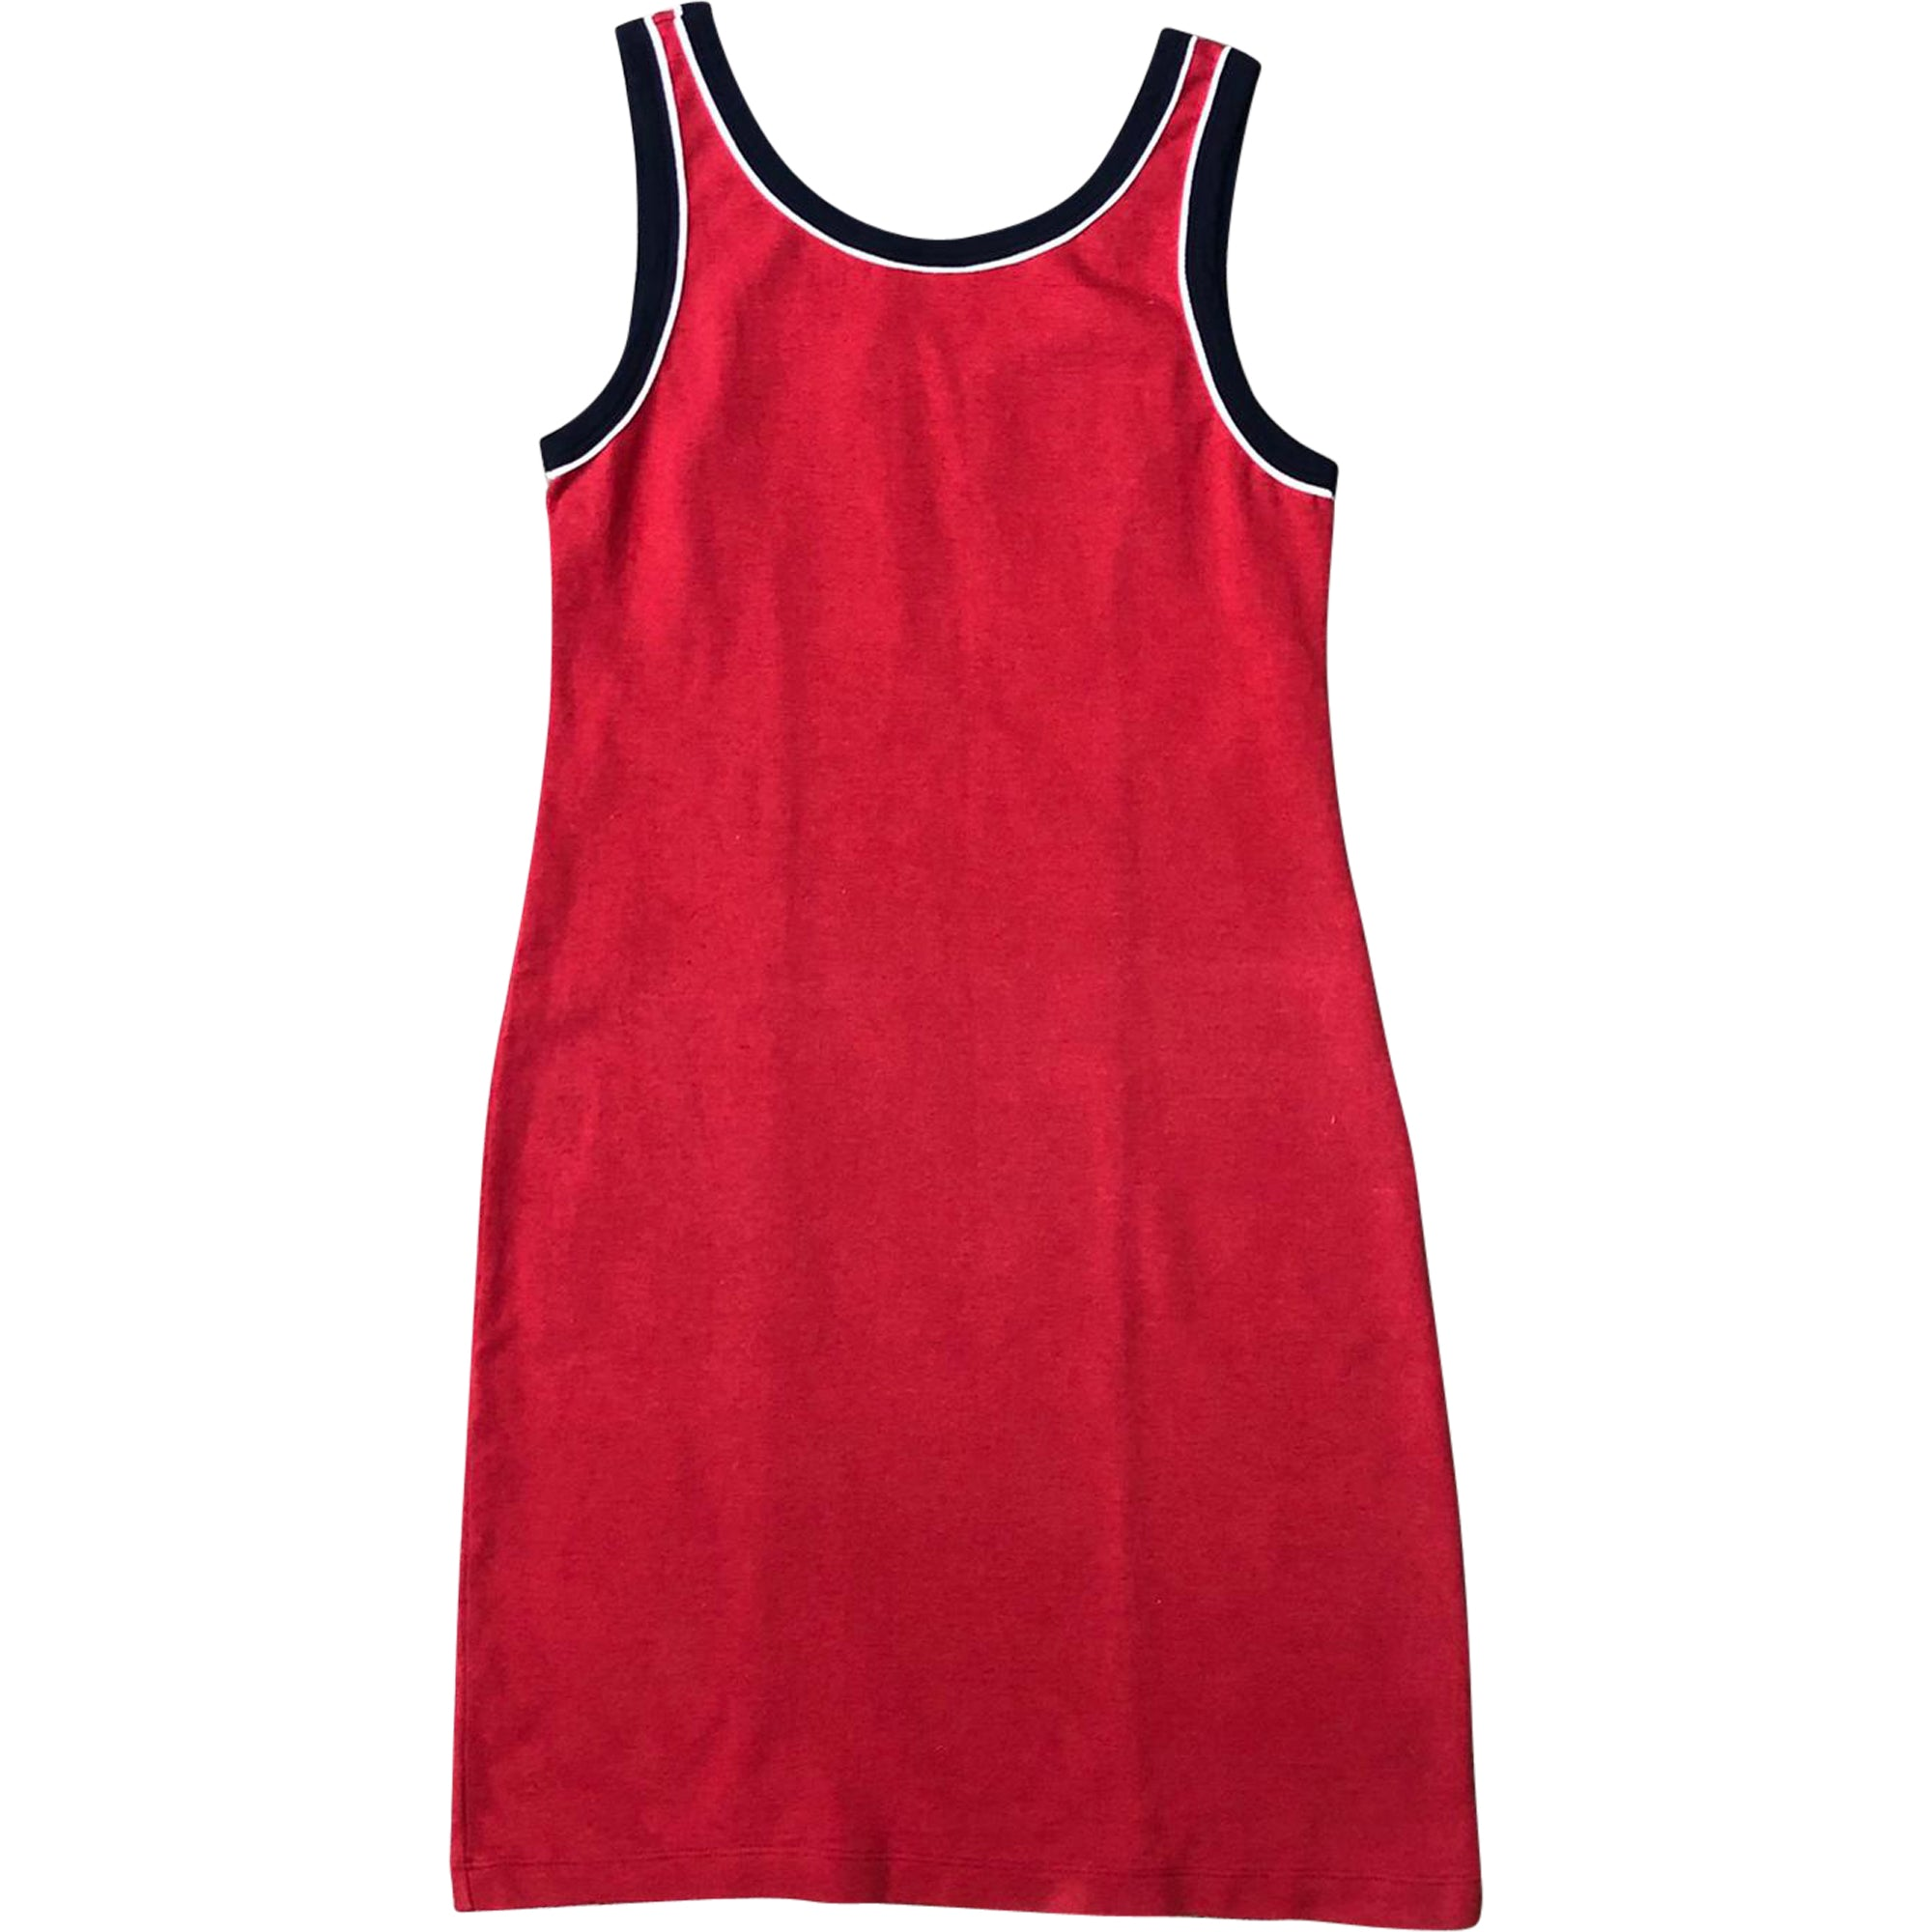 Nike Tennis Dress (Red) UK 8-12